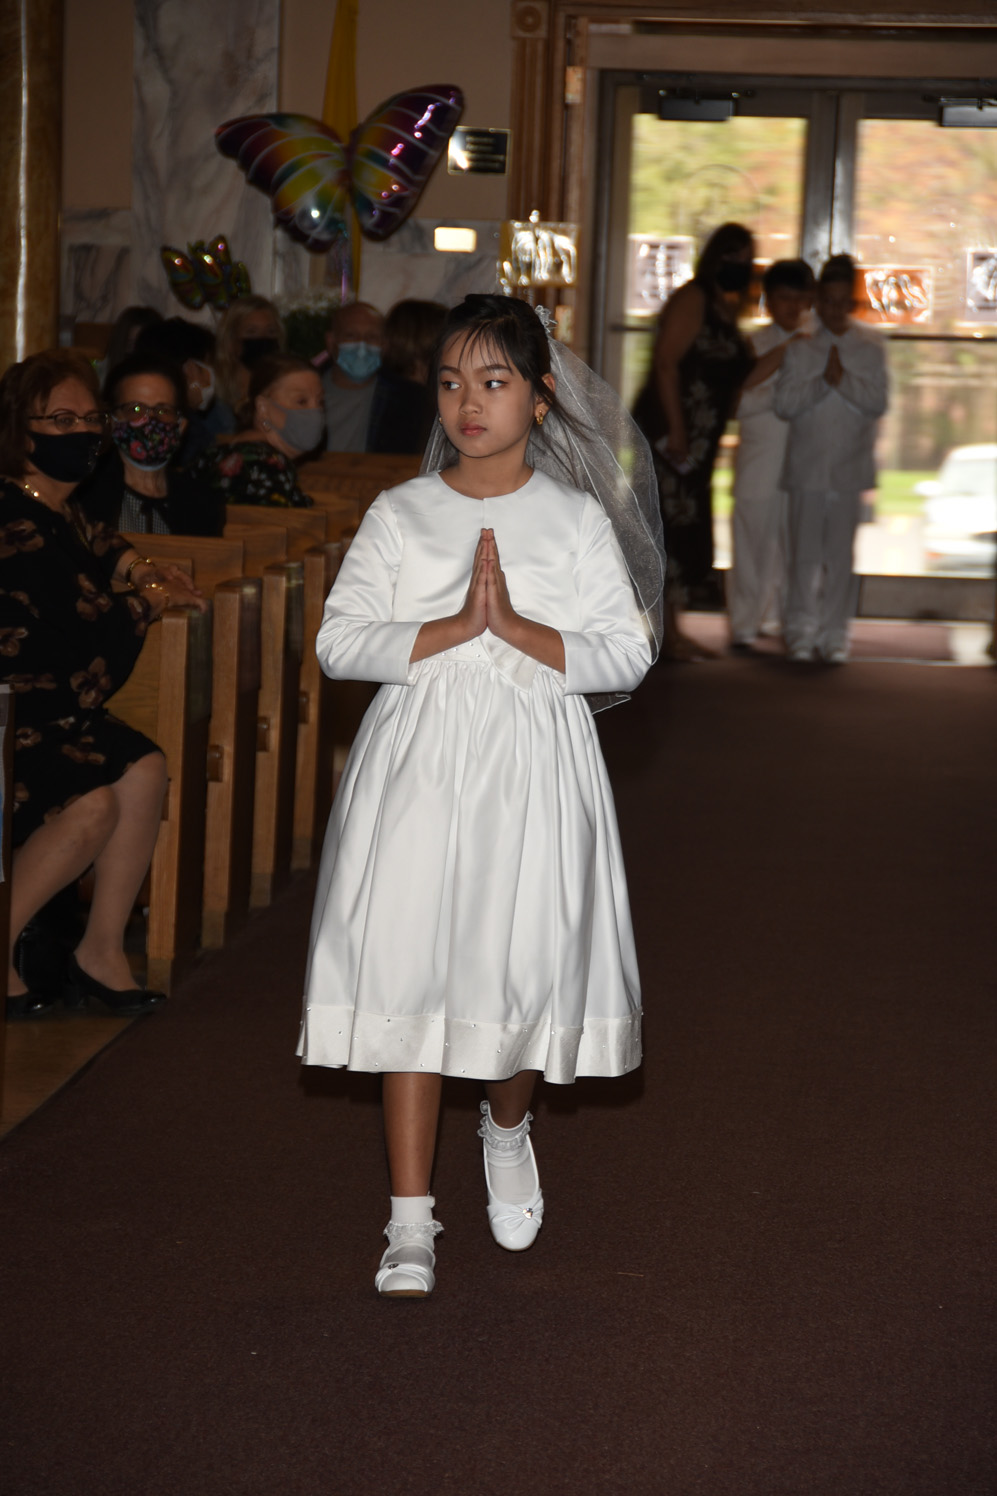 FIRST-COMMUNION-MAY-2-2021-1001001031